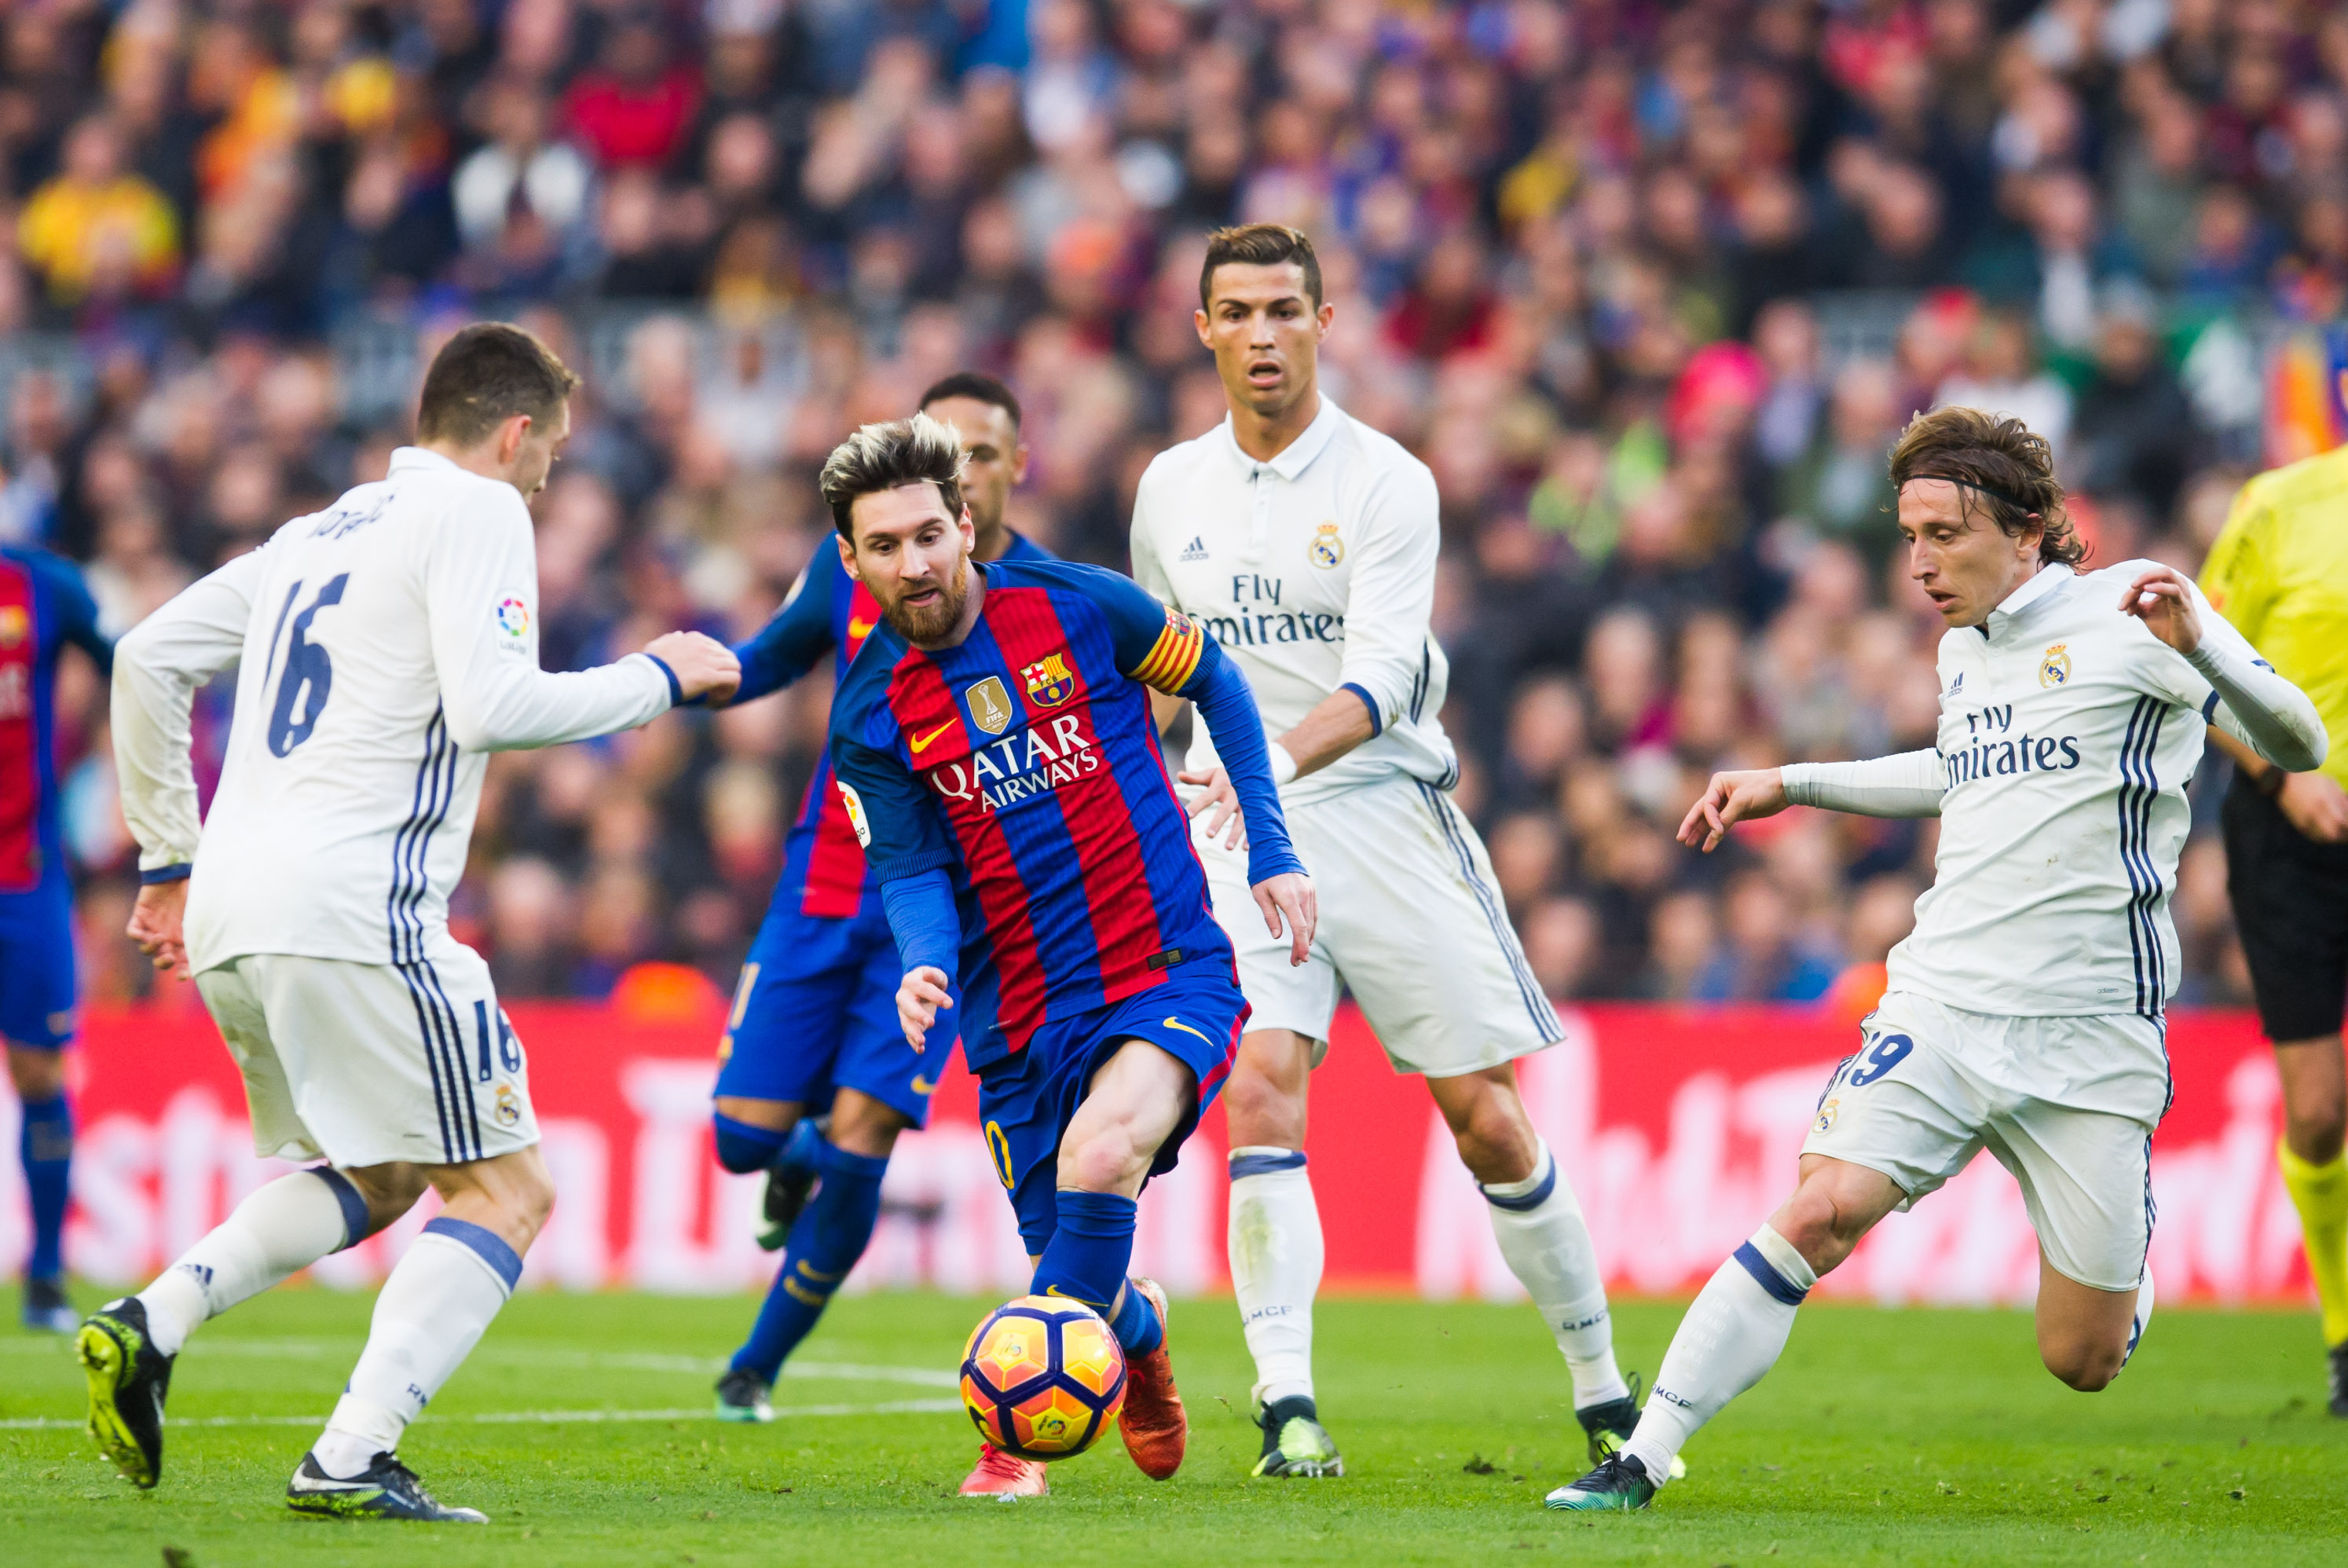 Barcelona Vs Real Madrid Score And Reaction From 2016 El Clasico Bleacher Report Latest News Videos And Highlights